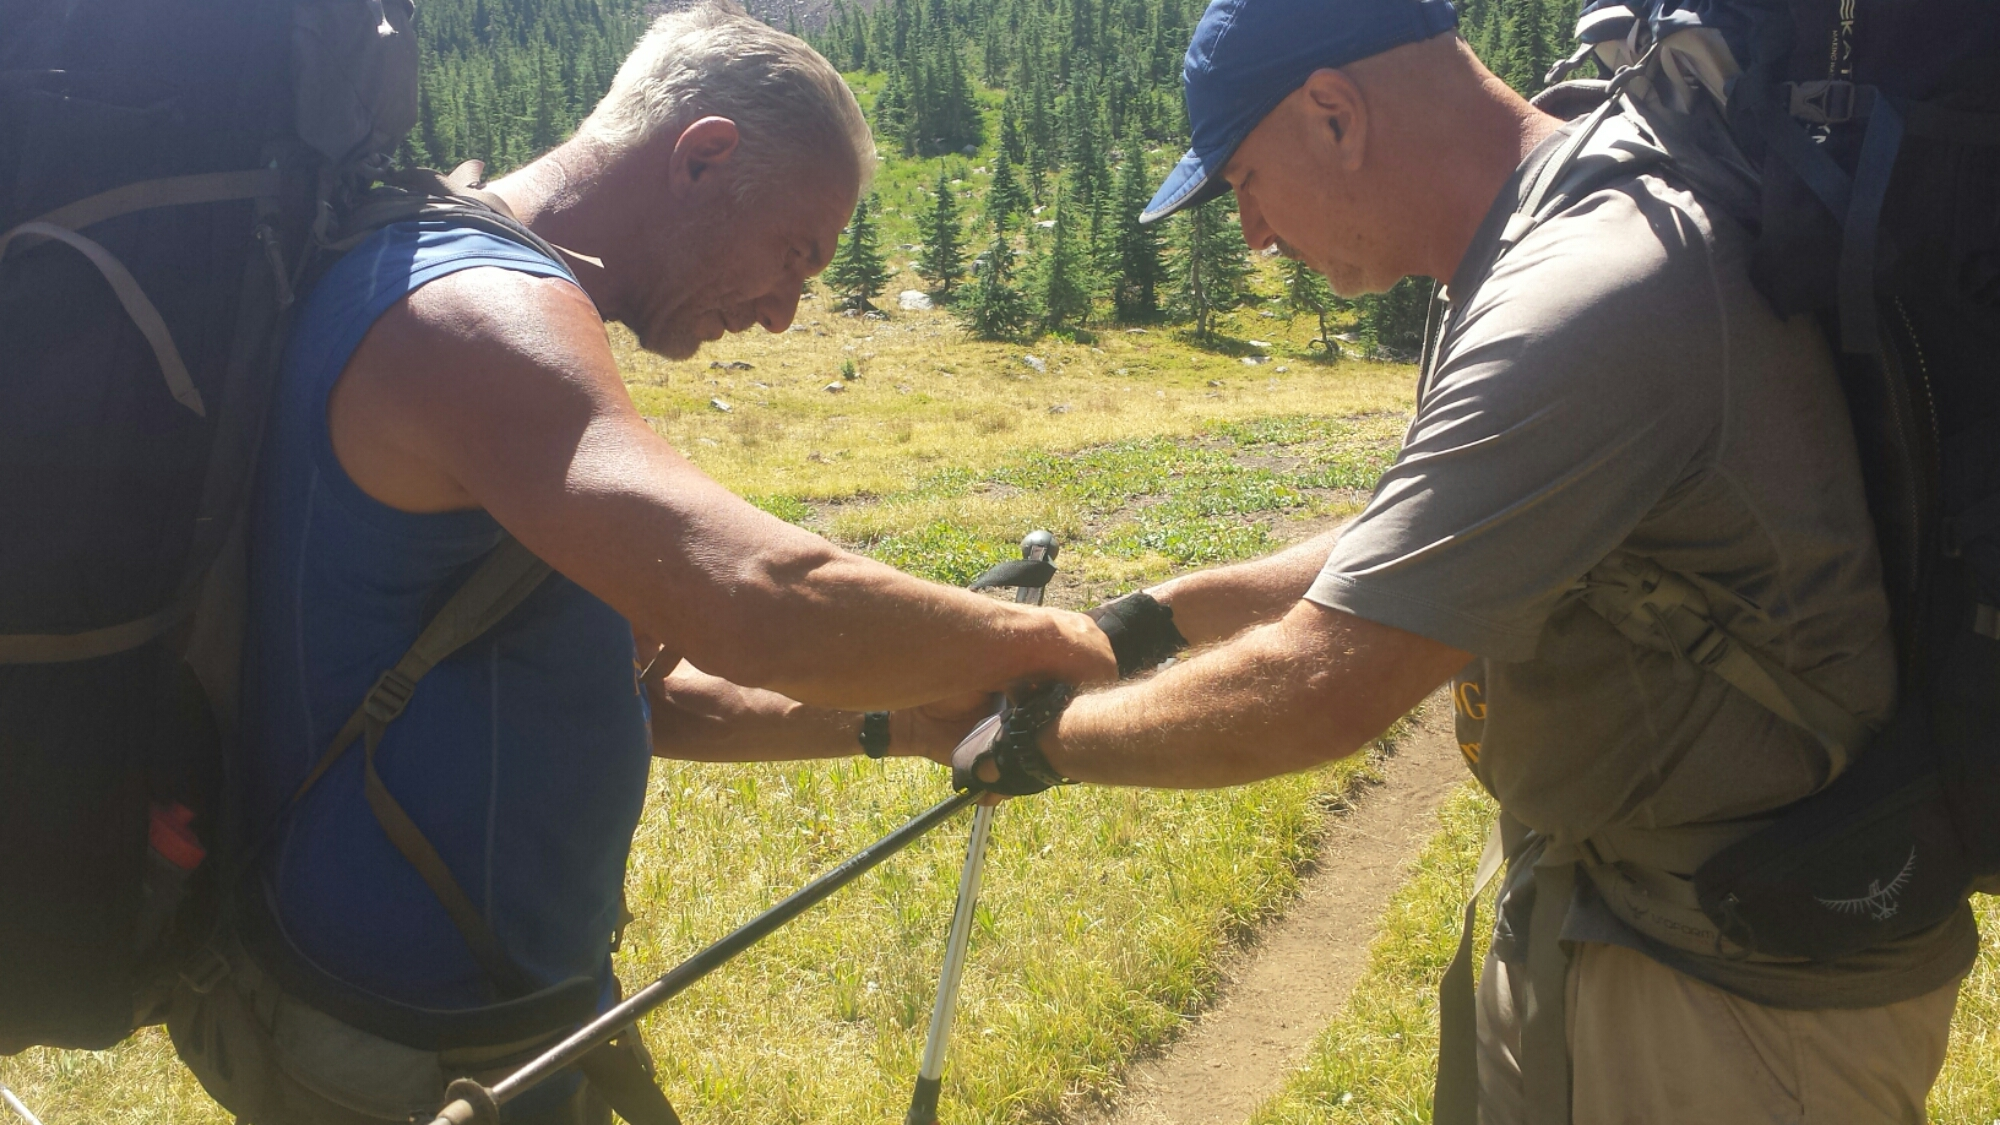 A couple firemen fixing my trekking pole